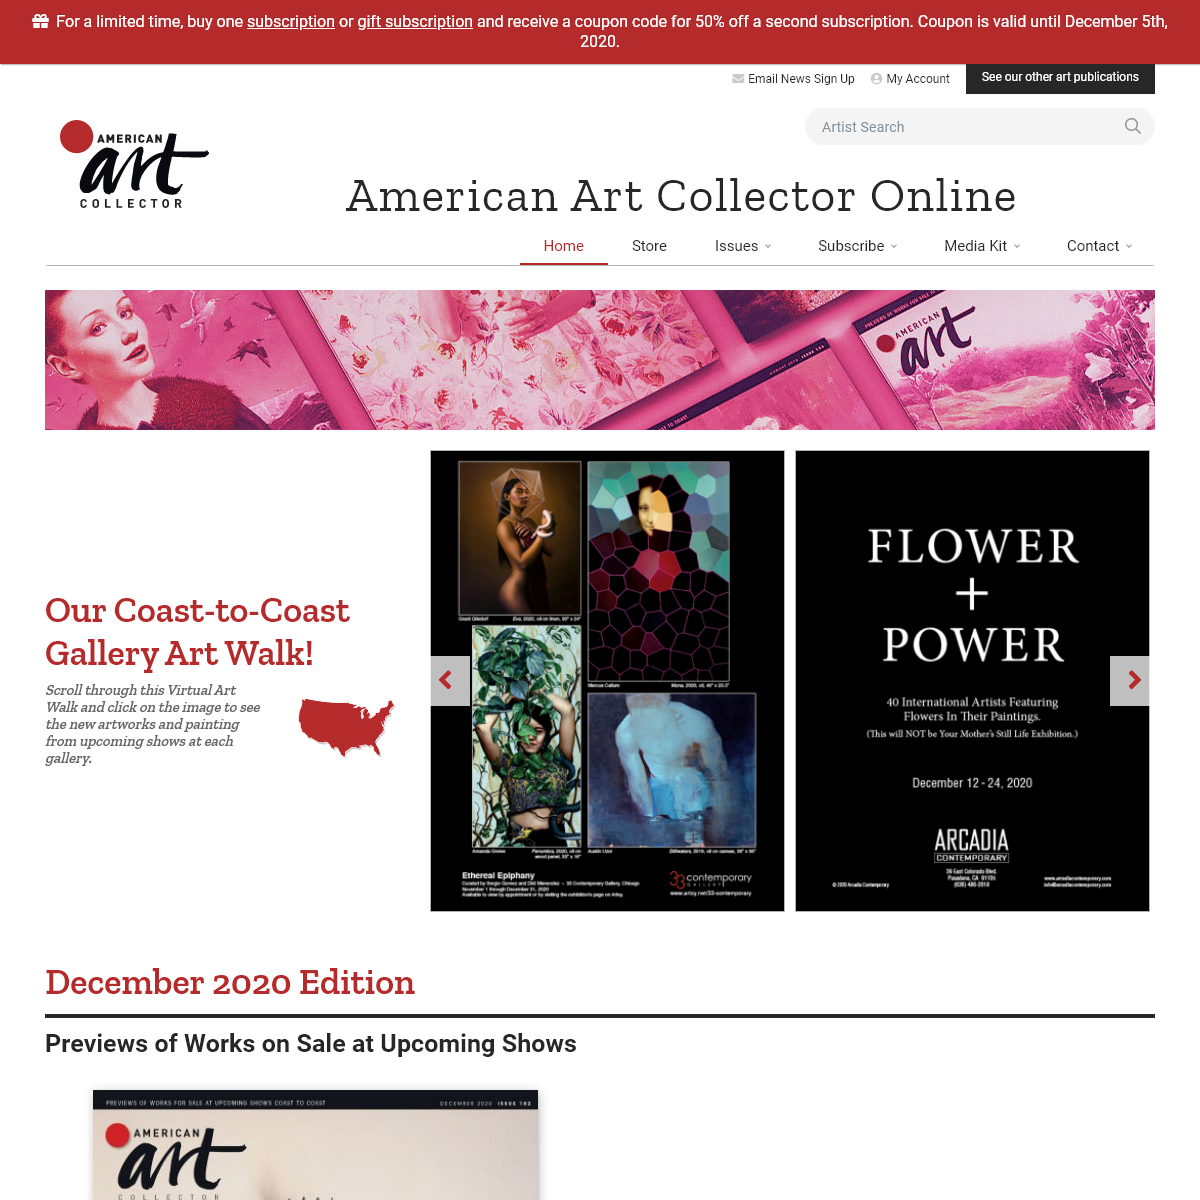 American Art Collector - A Monthly Magazine for Collectors, Galleries and Painters of Traditional Fine Art